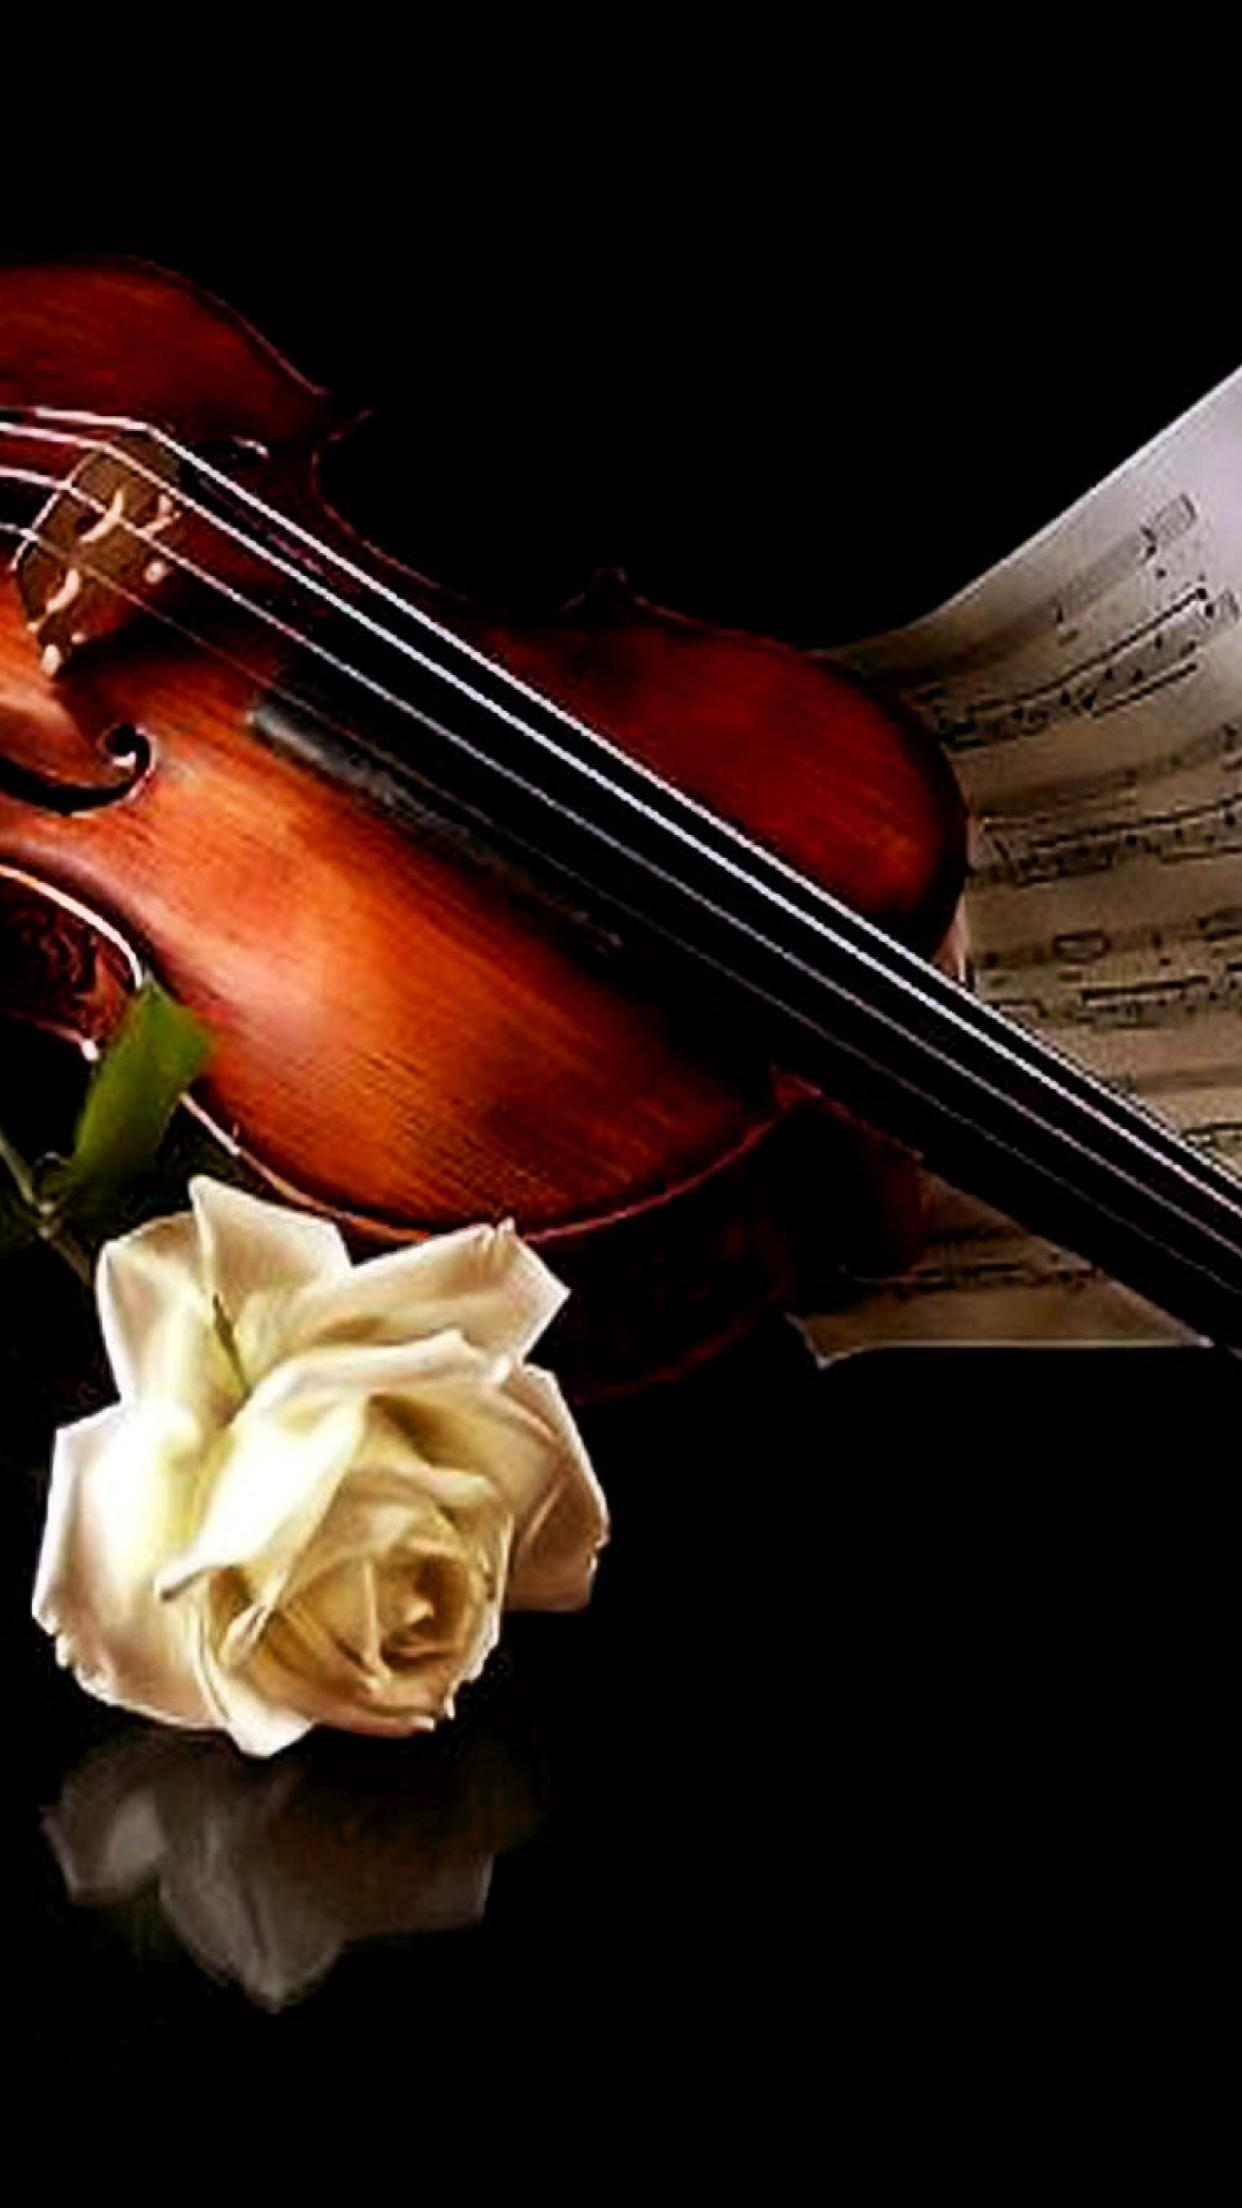 Beautiful Wallpaper Music Rose - the-music-of-violin-and-a-beautiful-white-rose-1242x2208  Trends_46342.jpg